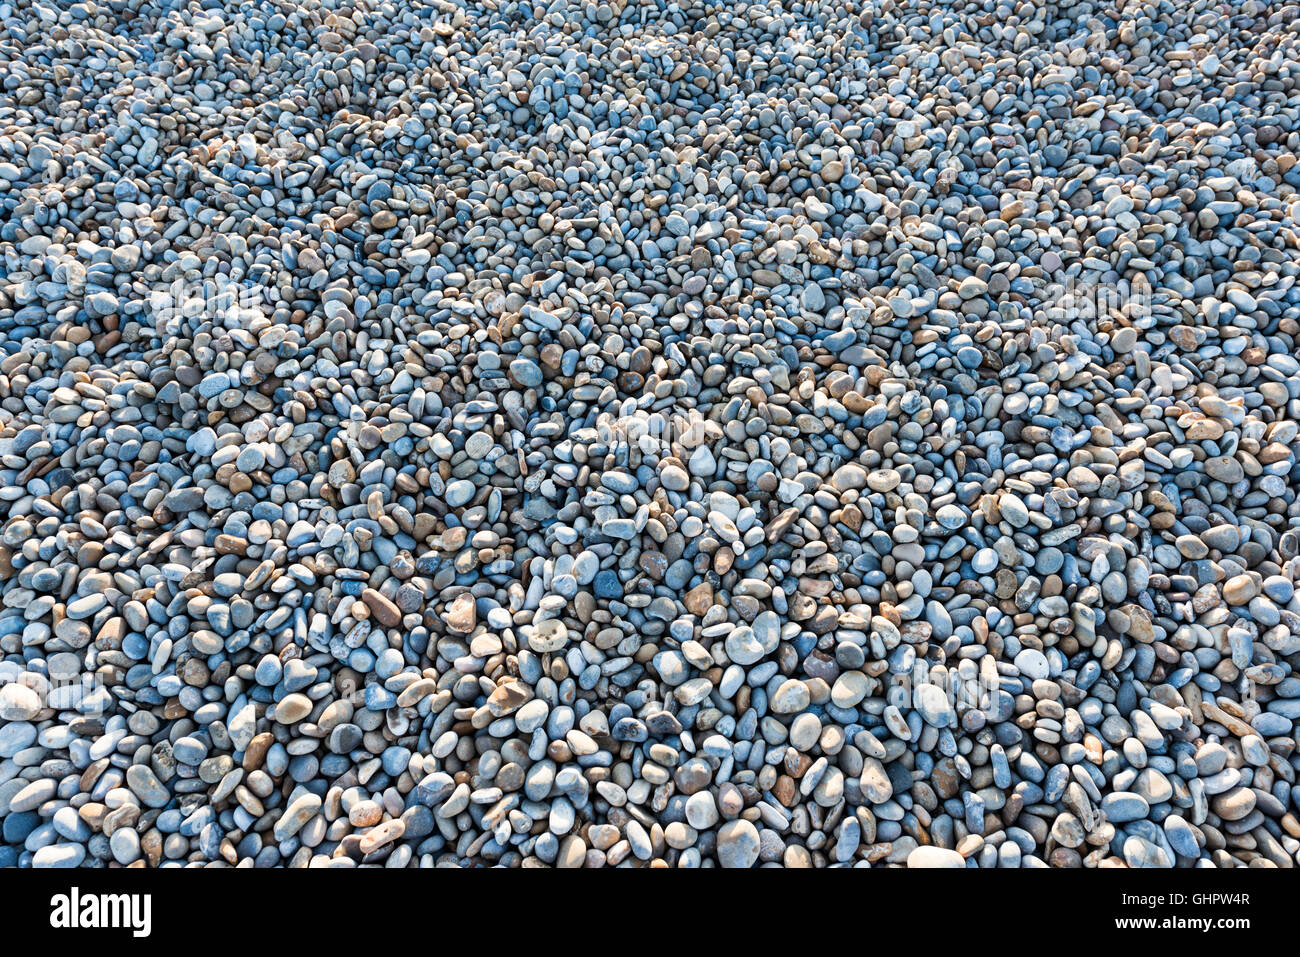 Close up abstract photo of a shingle beach. Could be used a texture background. - Stock Image